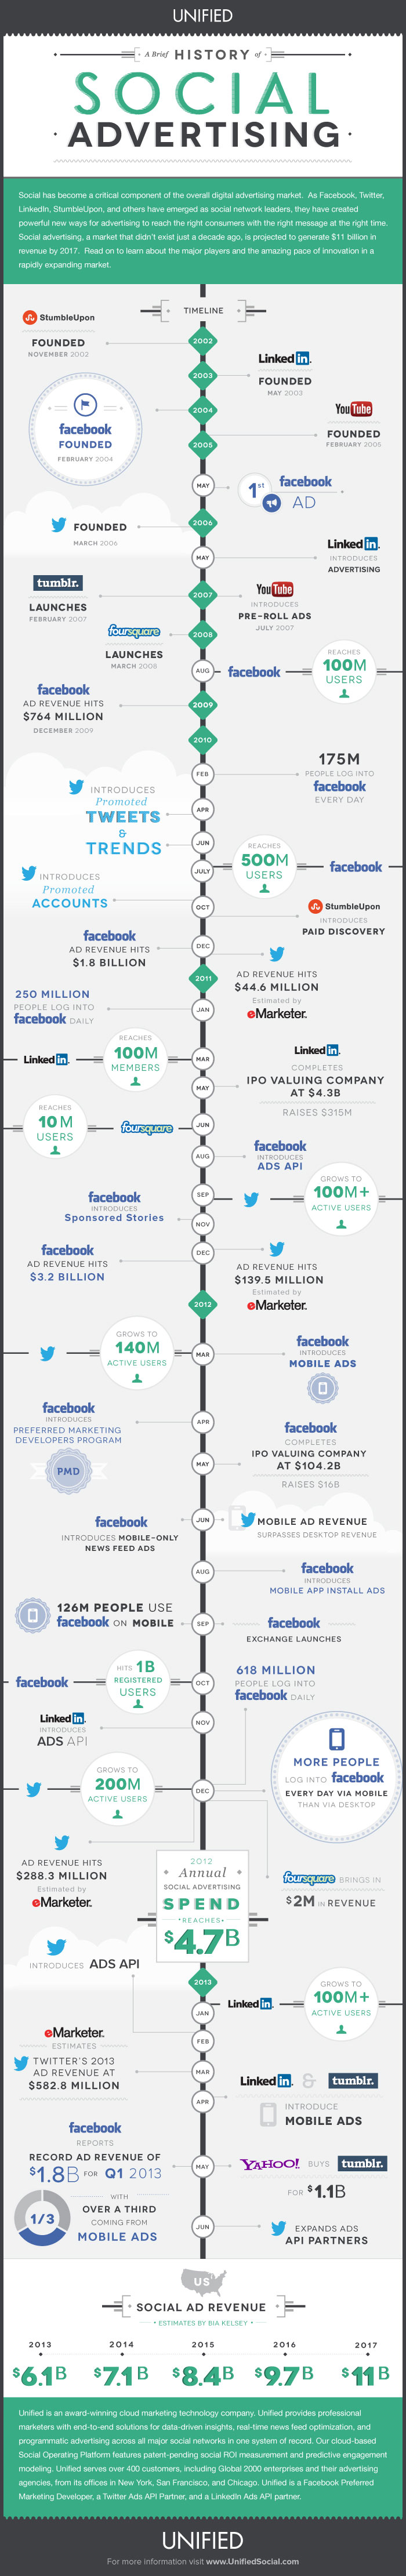 history-of-social-advertising-infographic